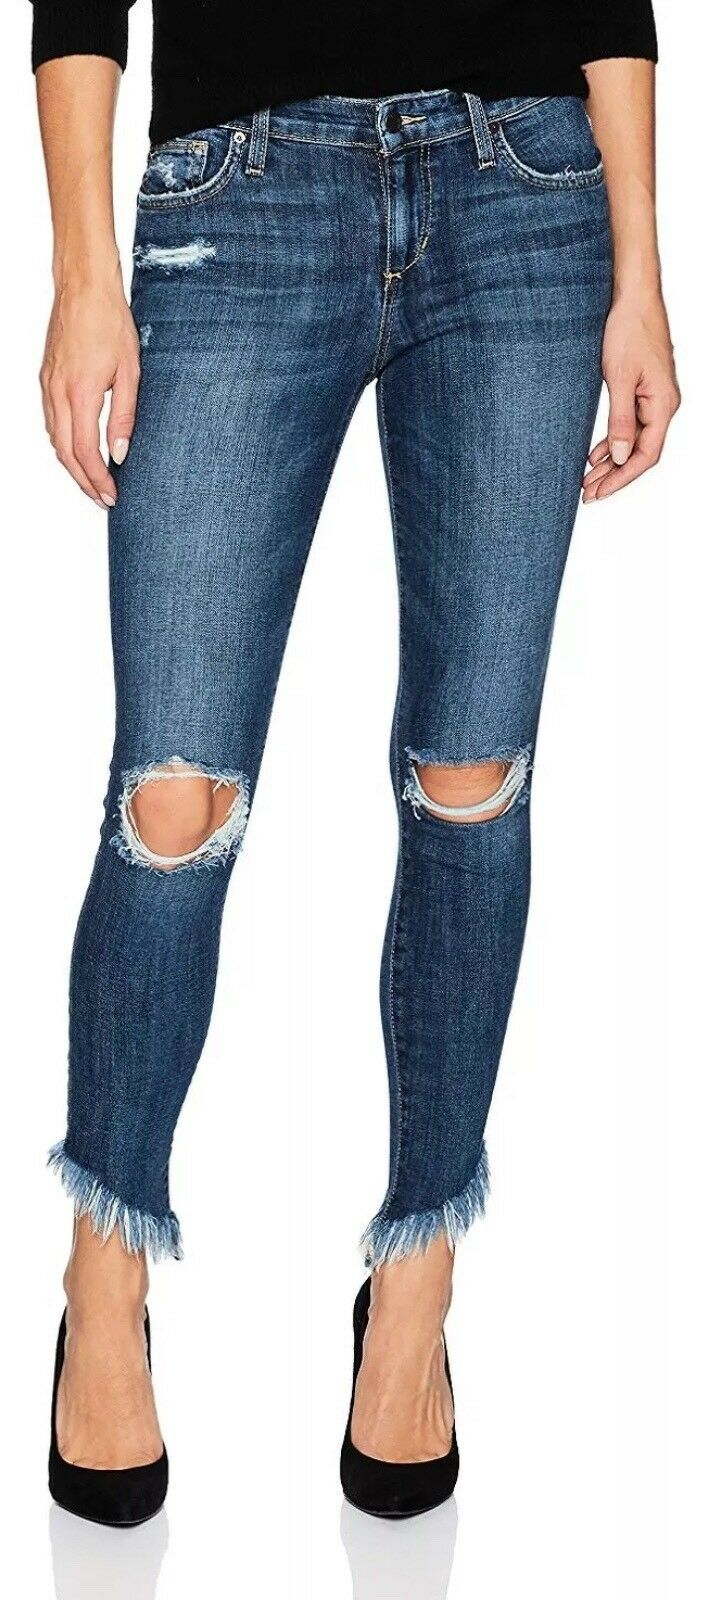 NEW Joe's Jeans The Icon Aydin Skinny Ankle Diagonal Hem 31 Actual 33 x 26.5